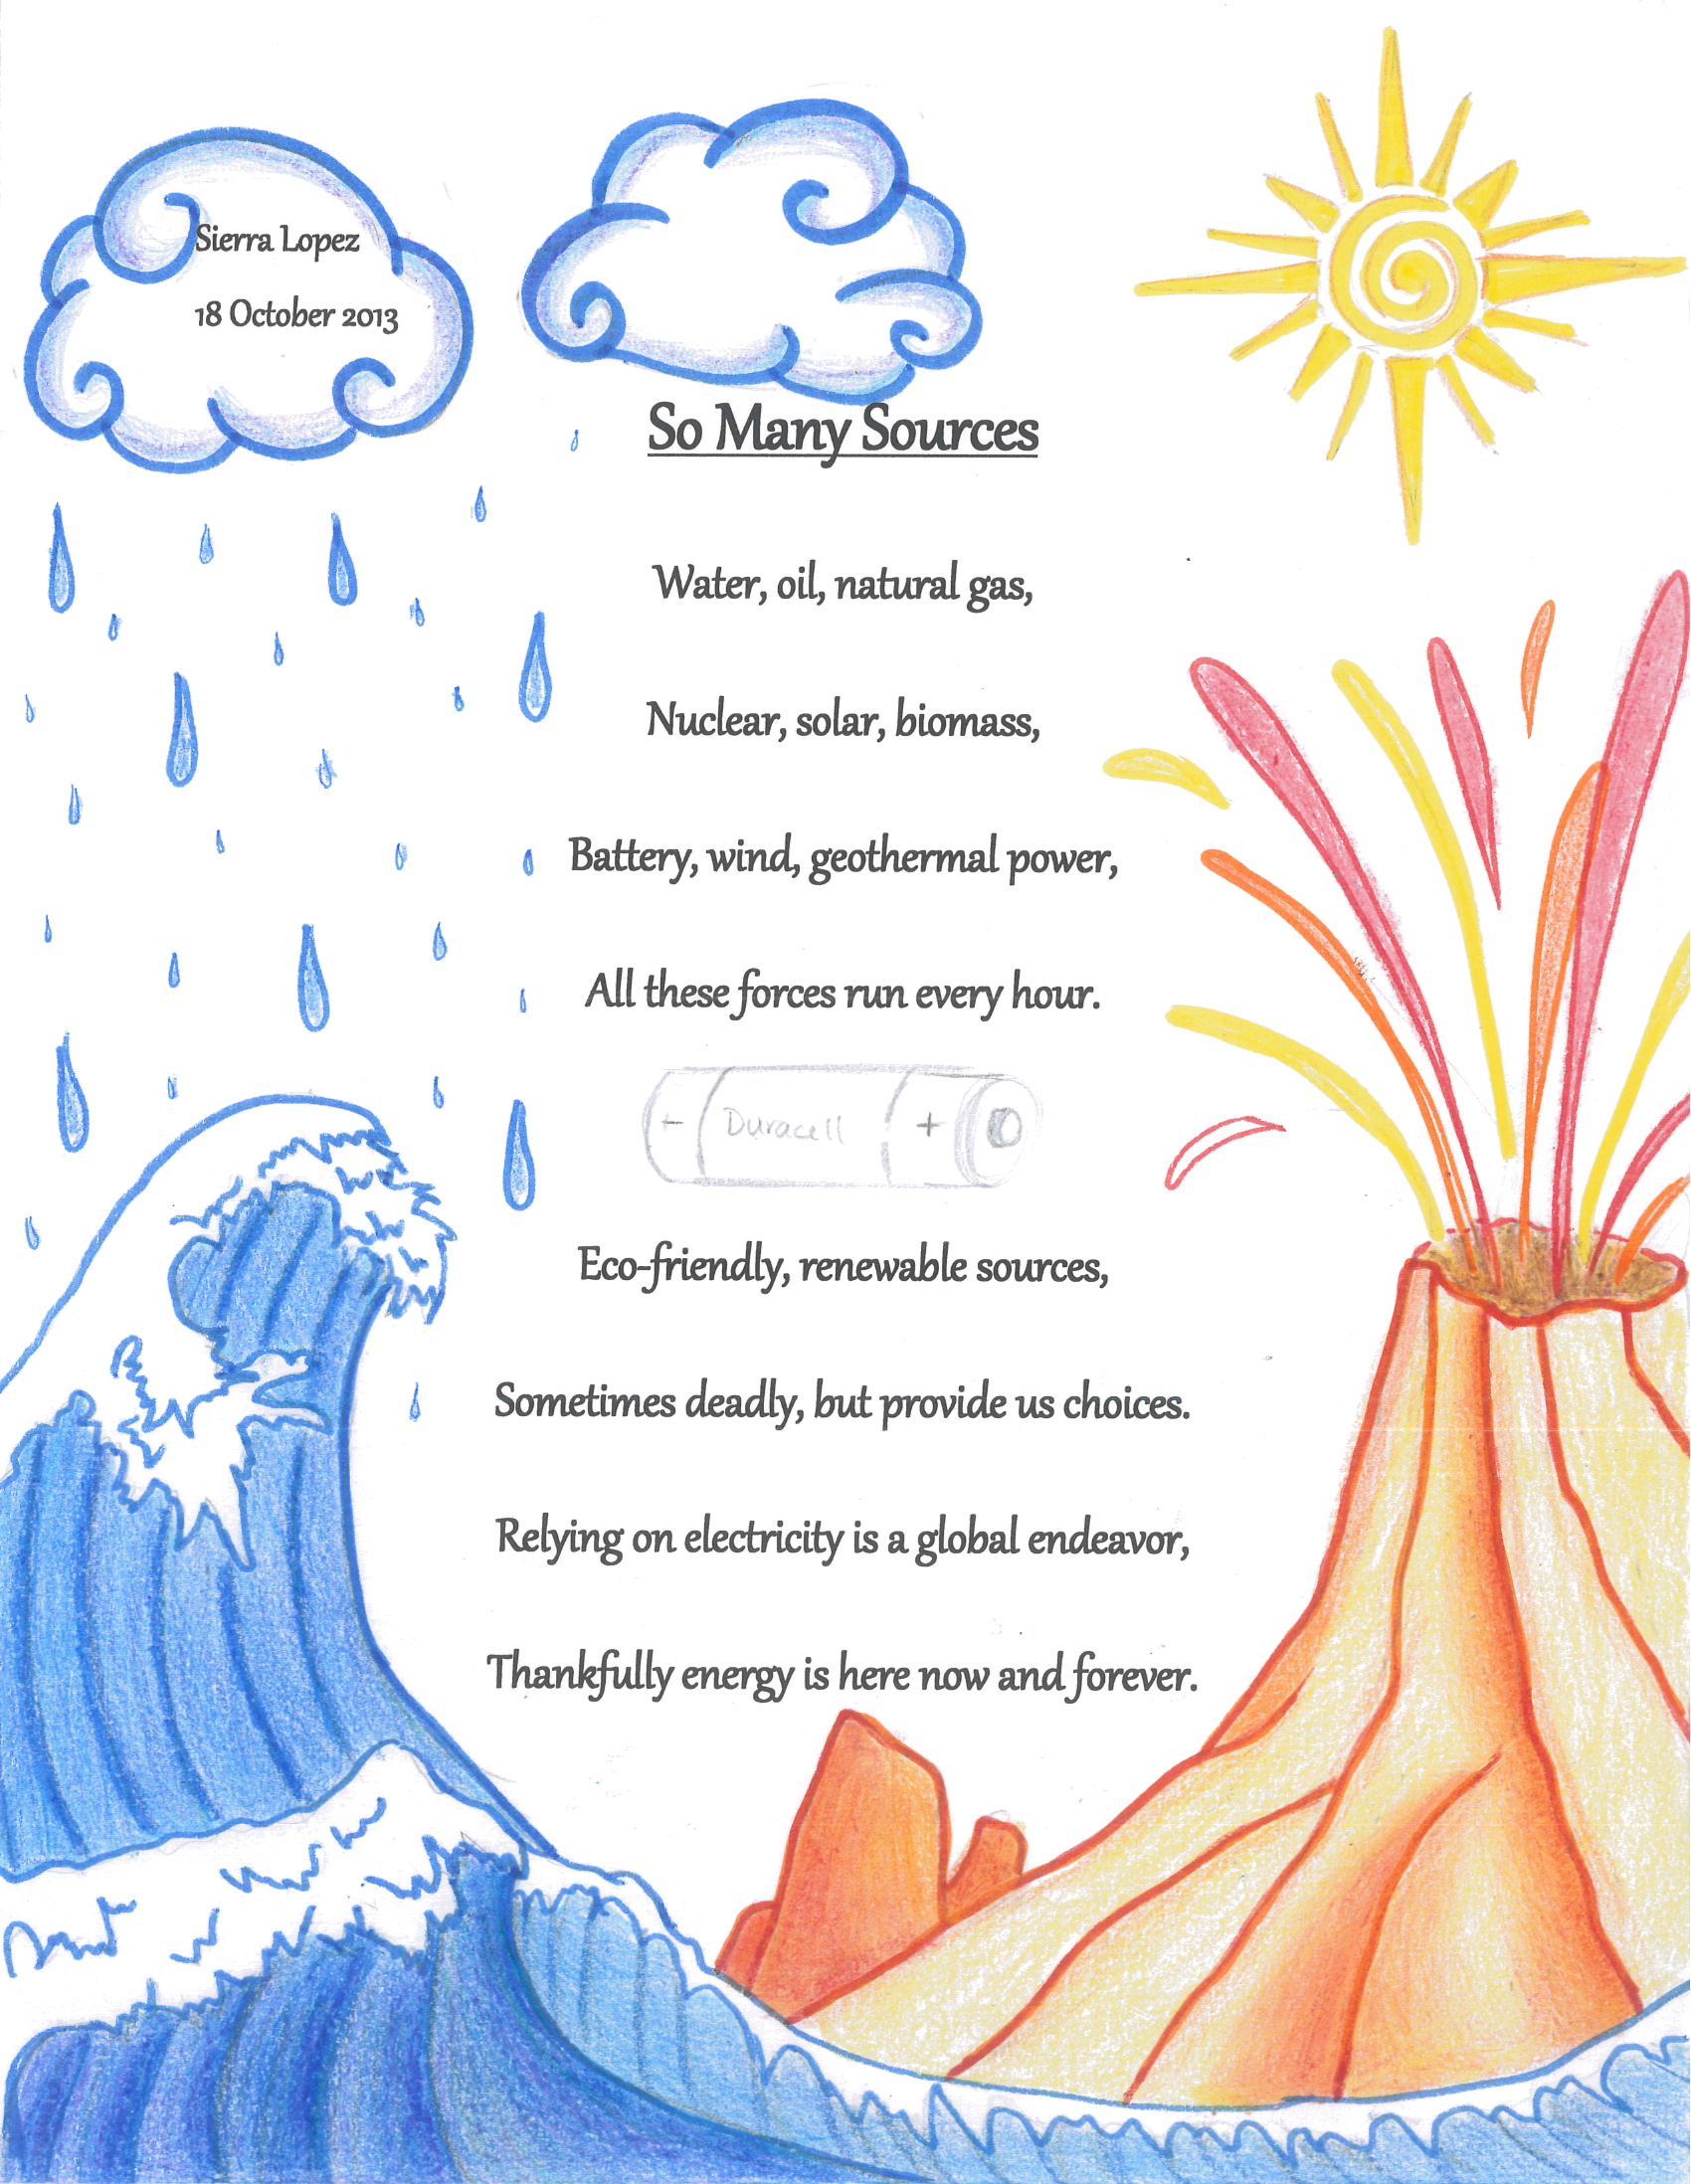 Winners of the National Chemistry Week Illustrated Poem Contest 2014